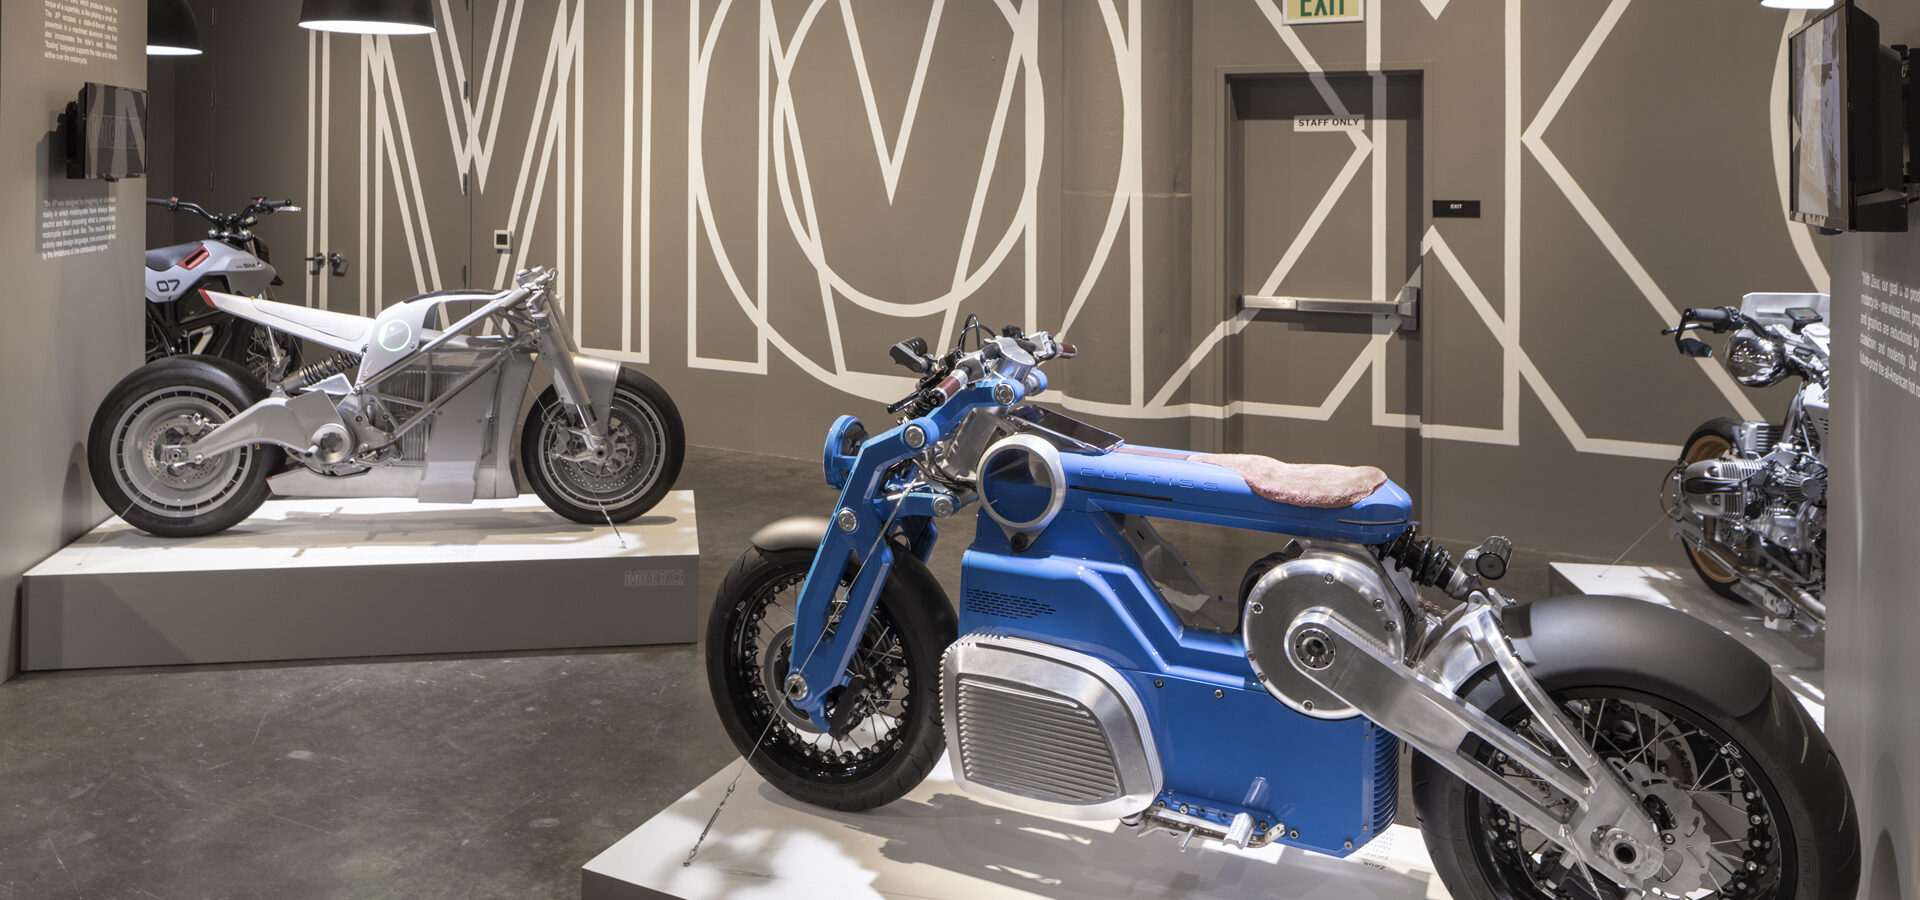 Photos of the motorcycle exhibition called MOTO MMXX